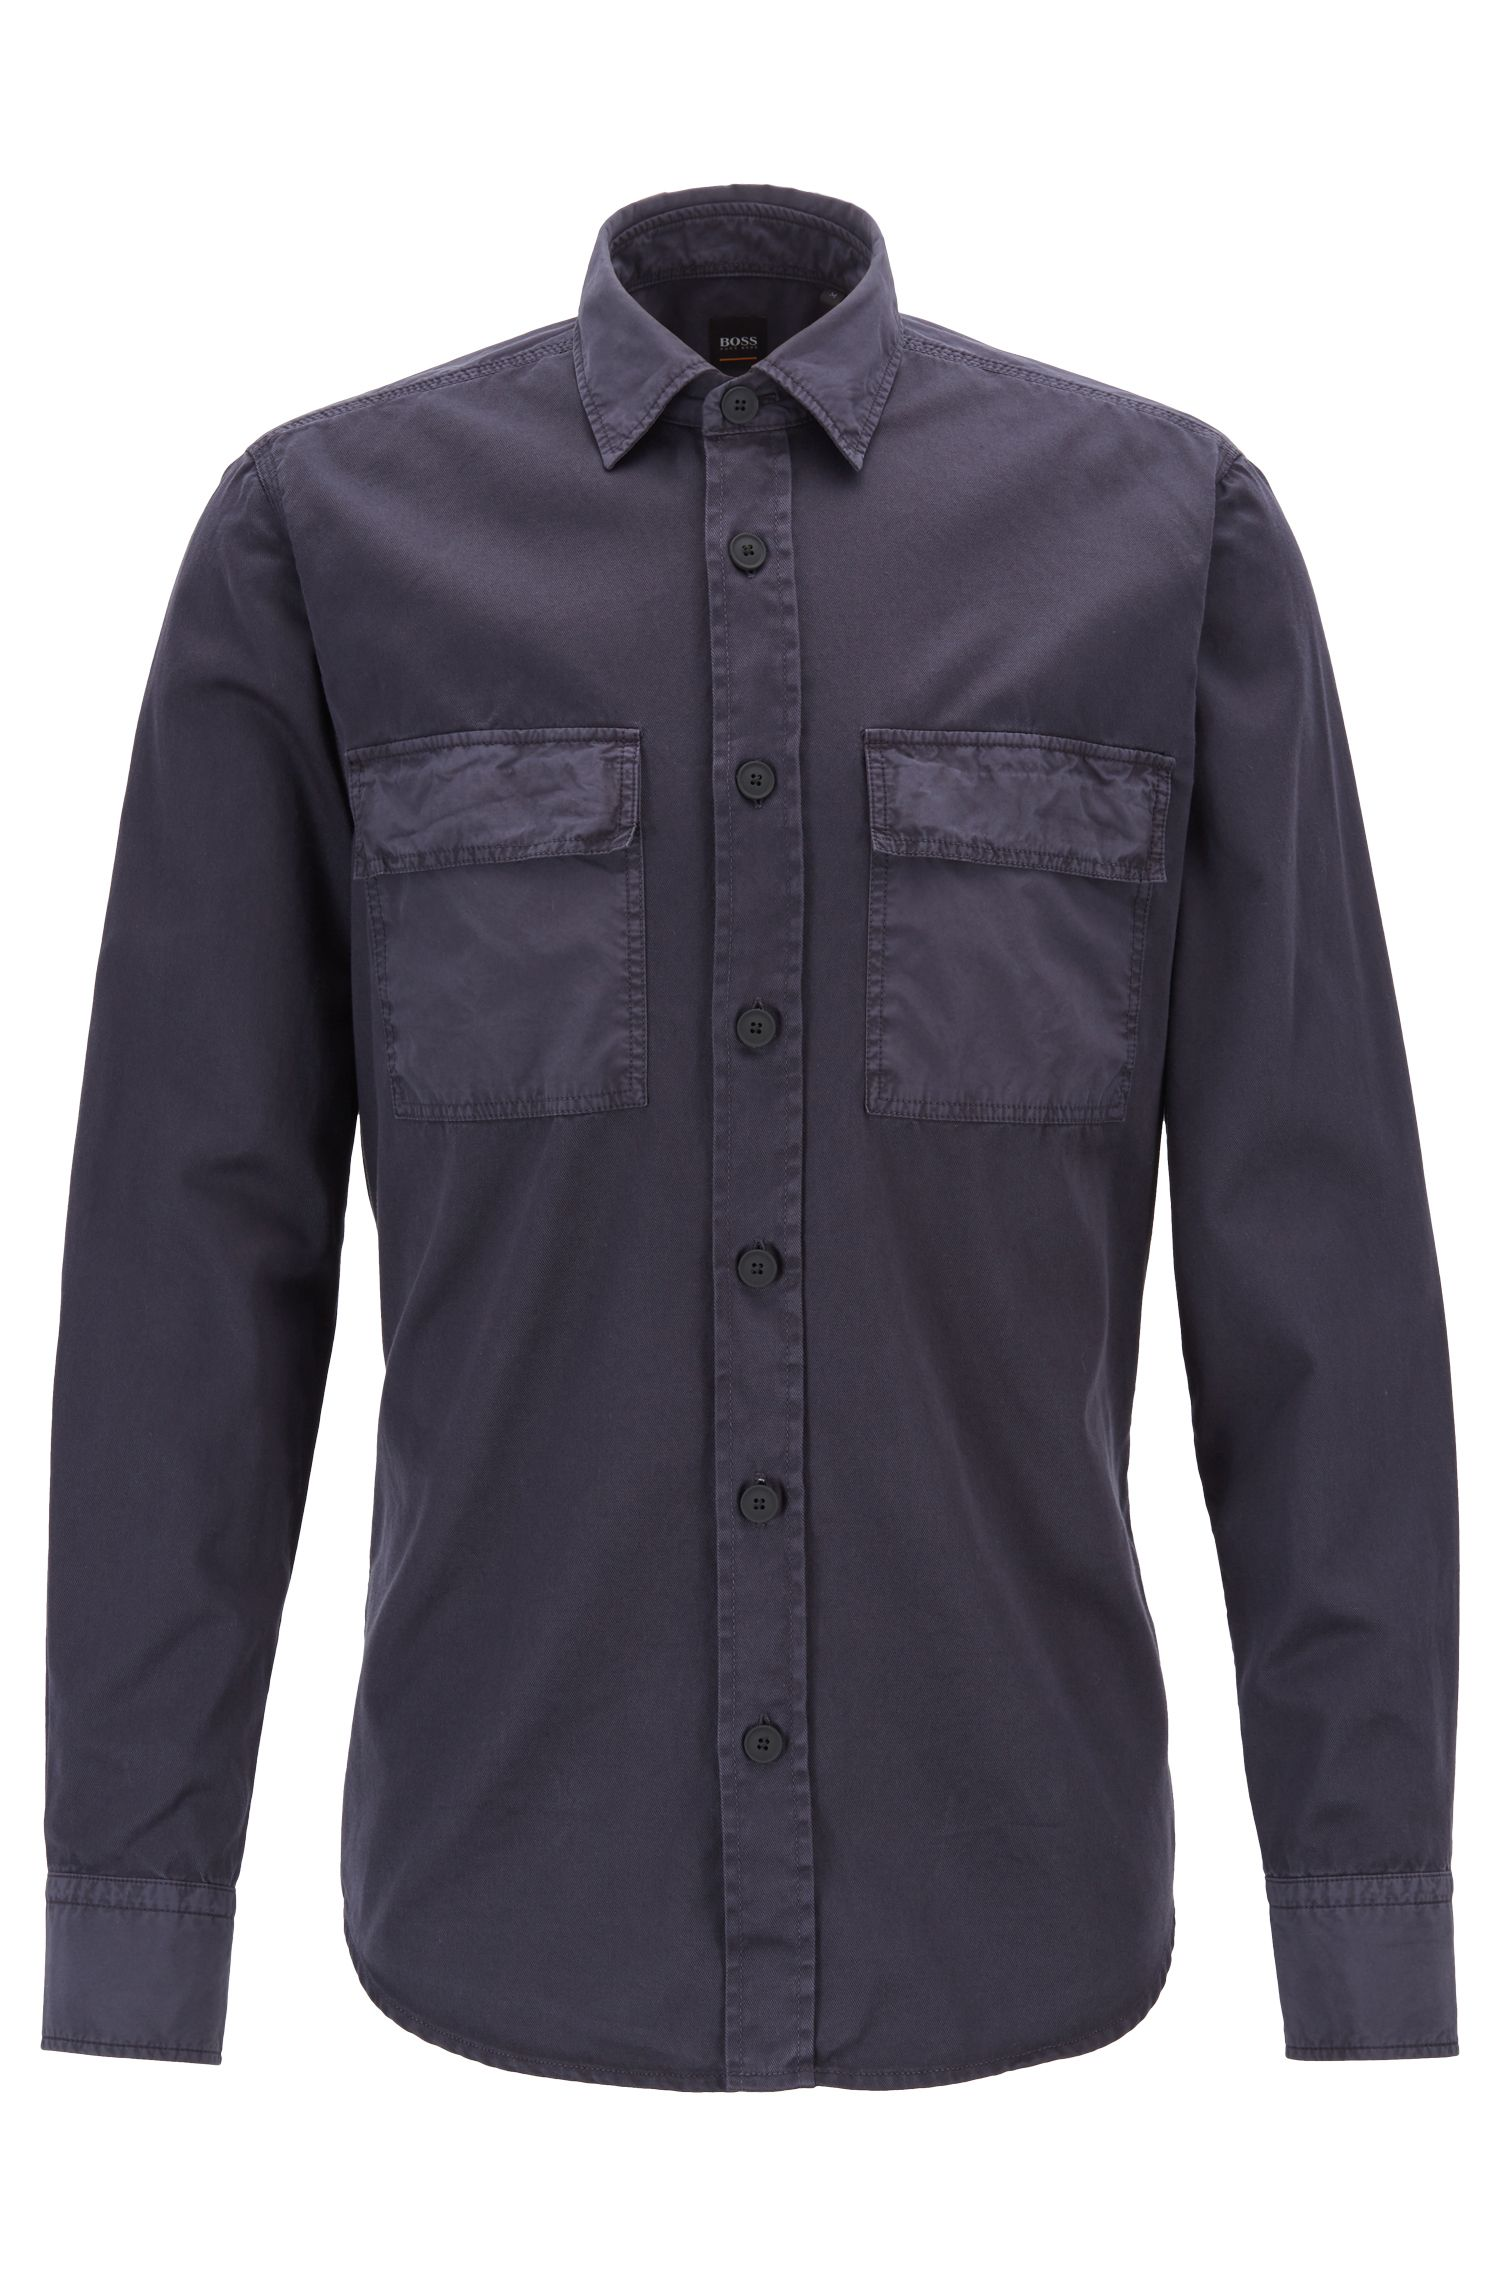 Camicia regular fit in twill di cotone con tasche con patta, Blu scuro